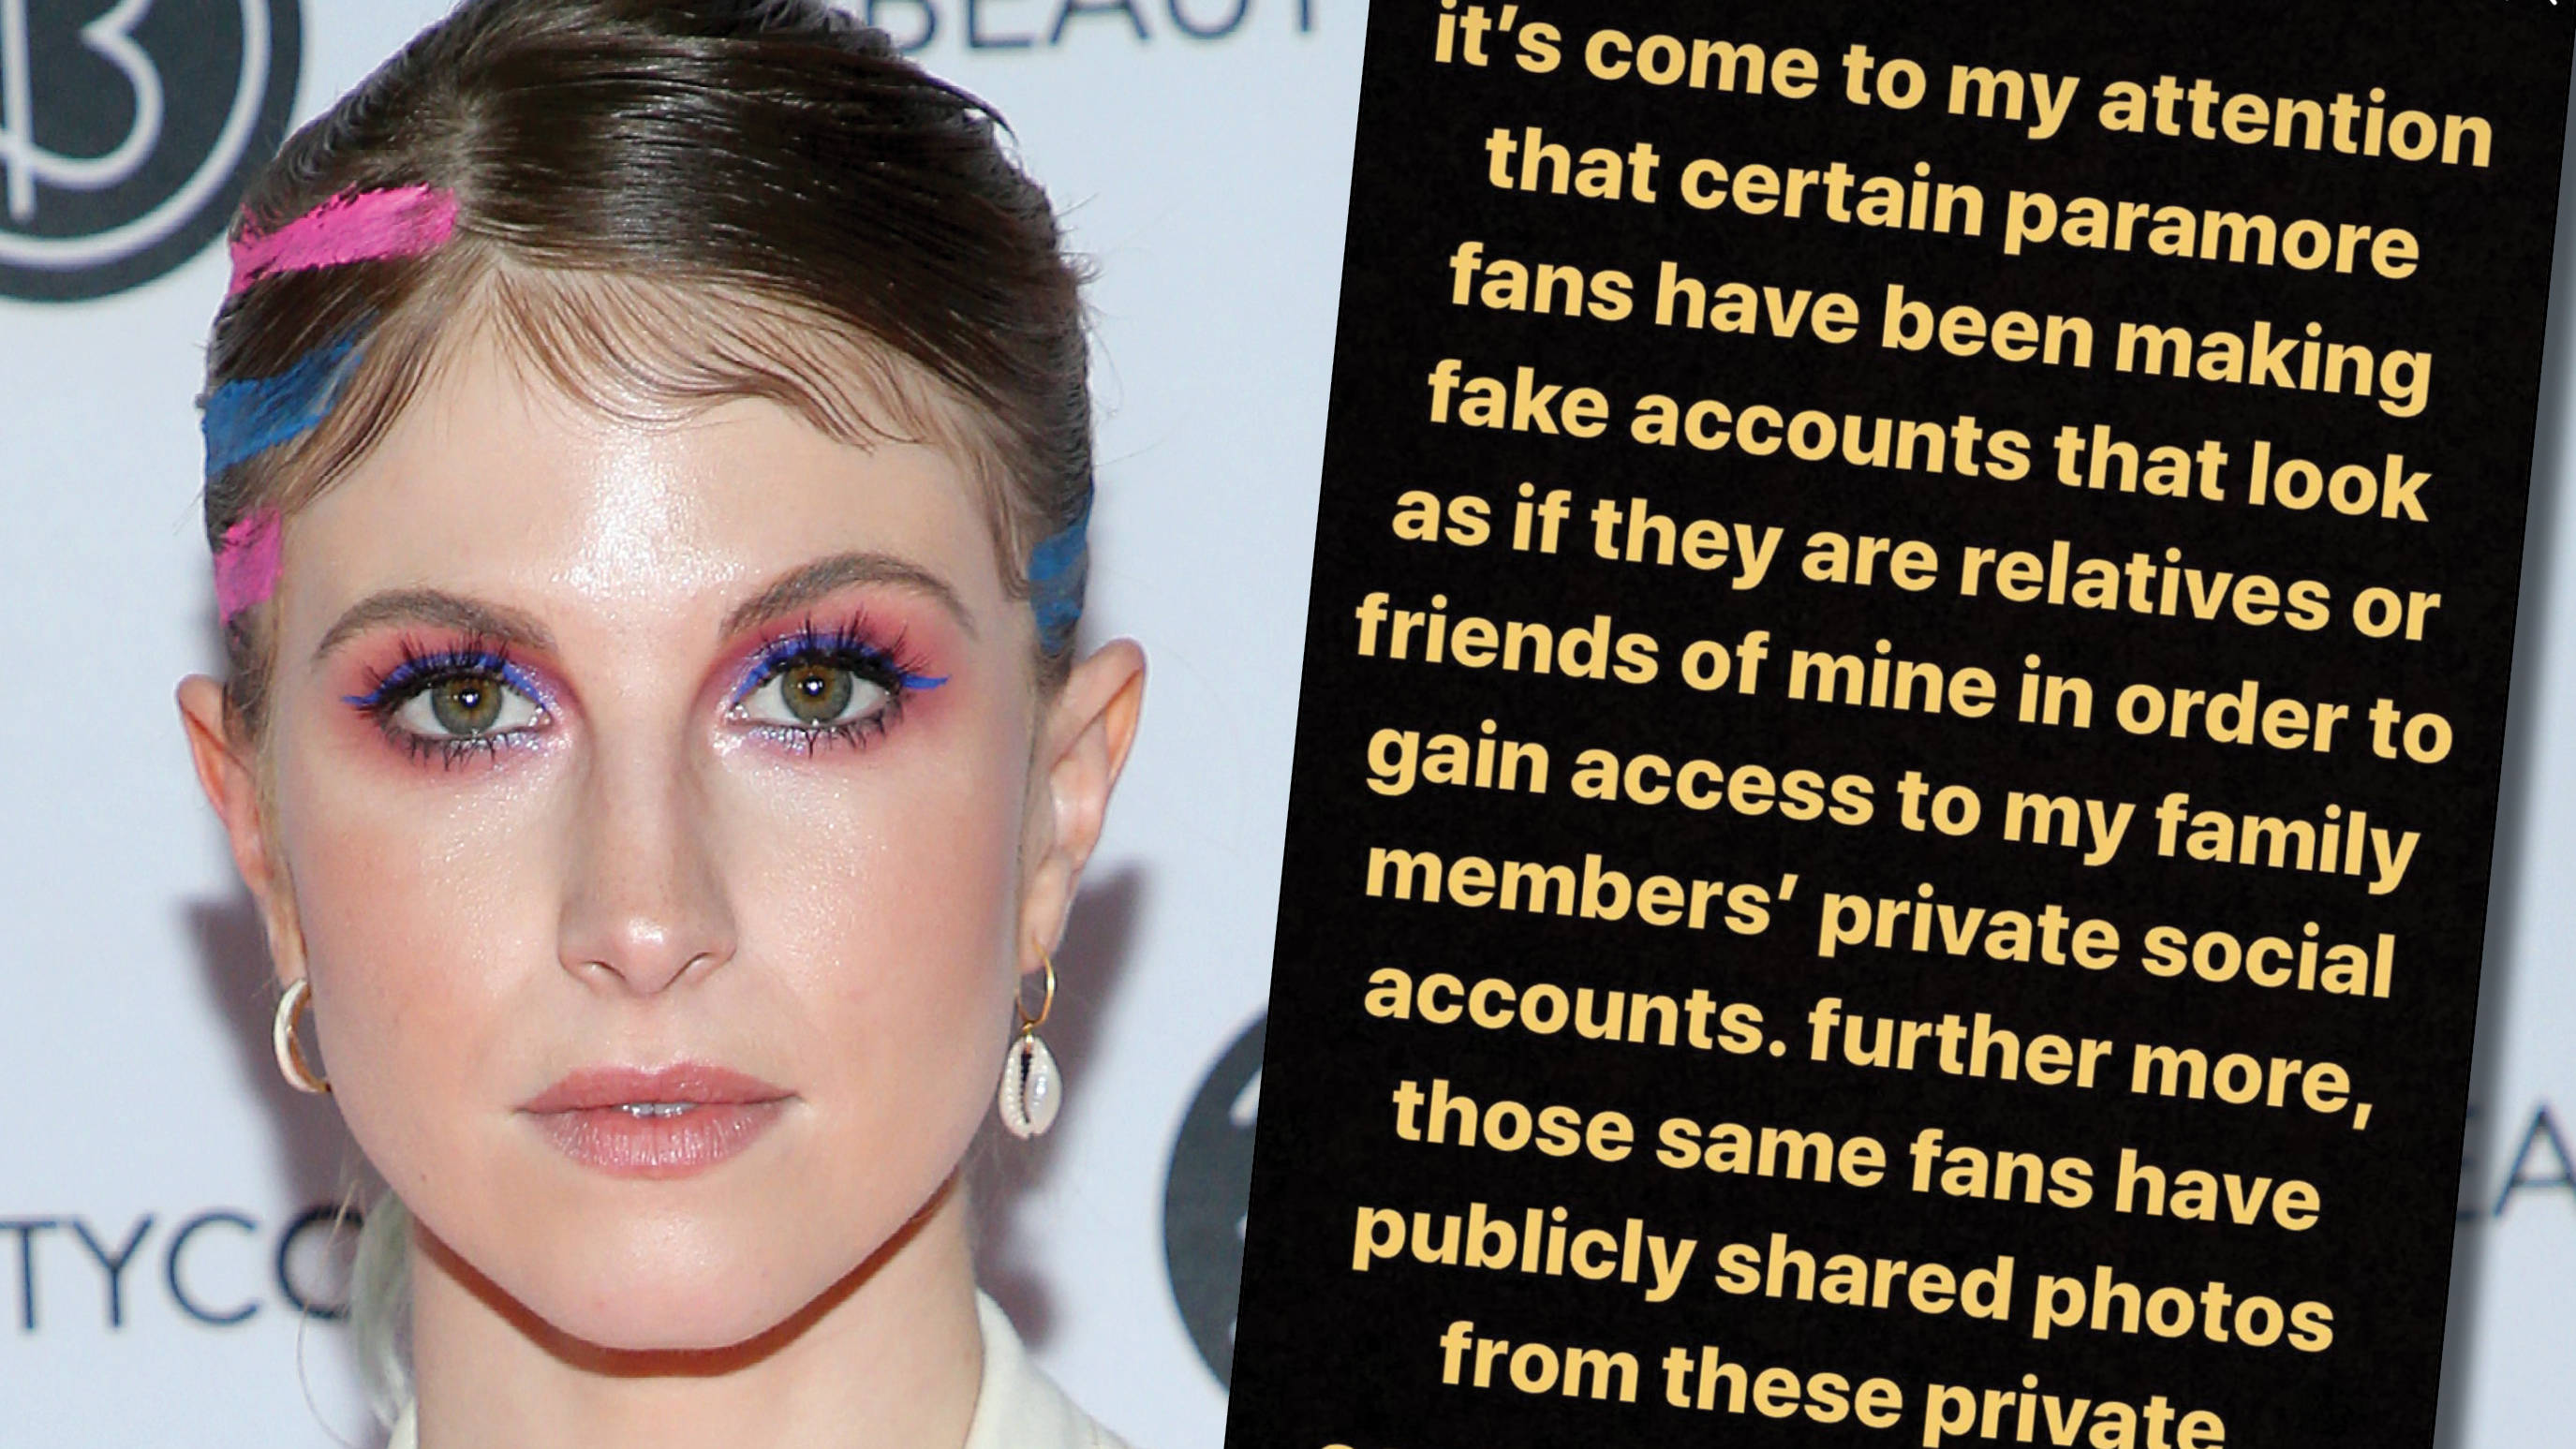 Hayley Williams calls out Paramore fans who made fake profiles pretending to be her family